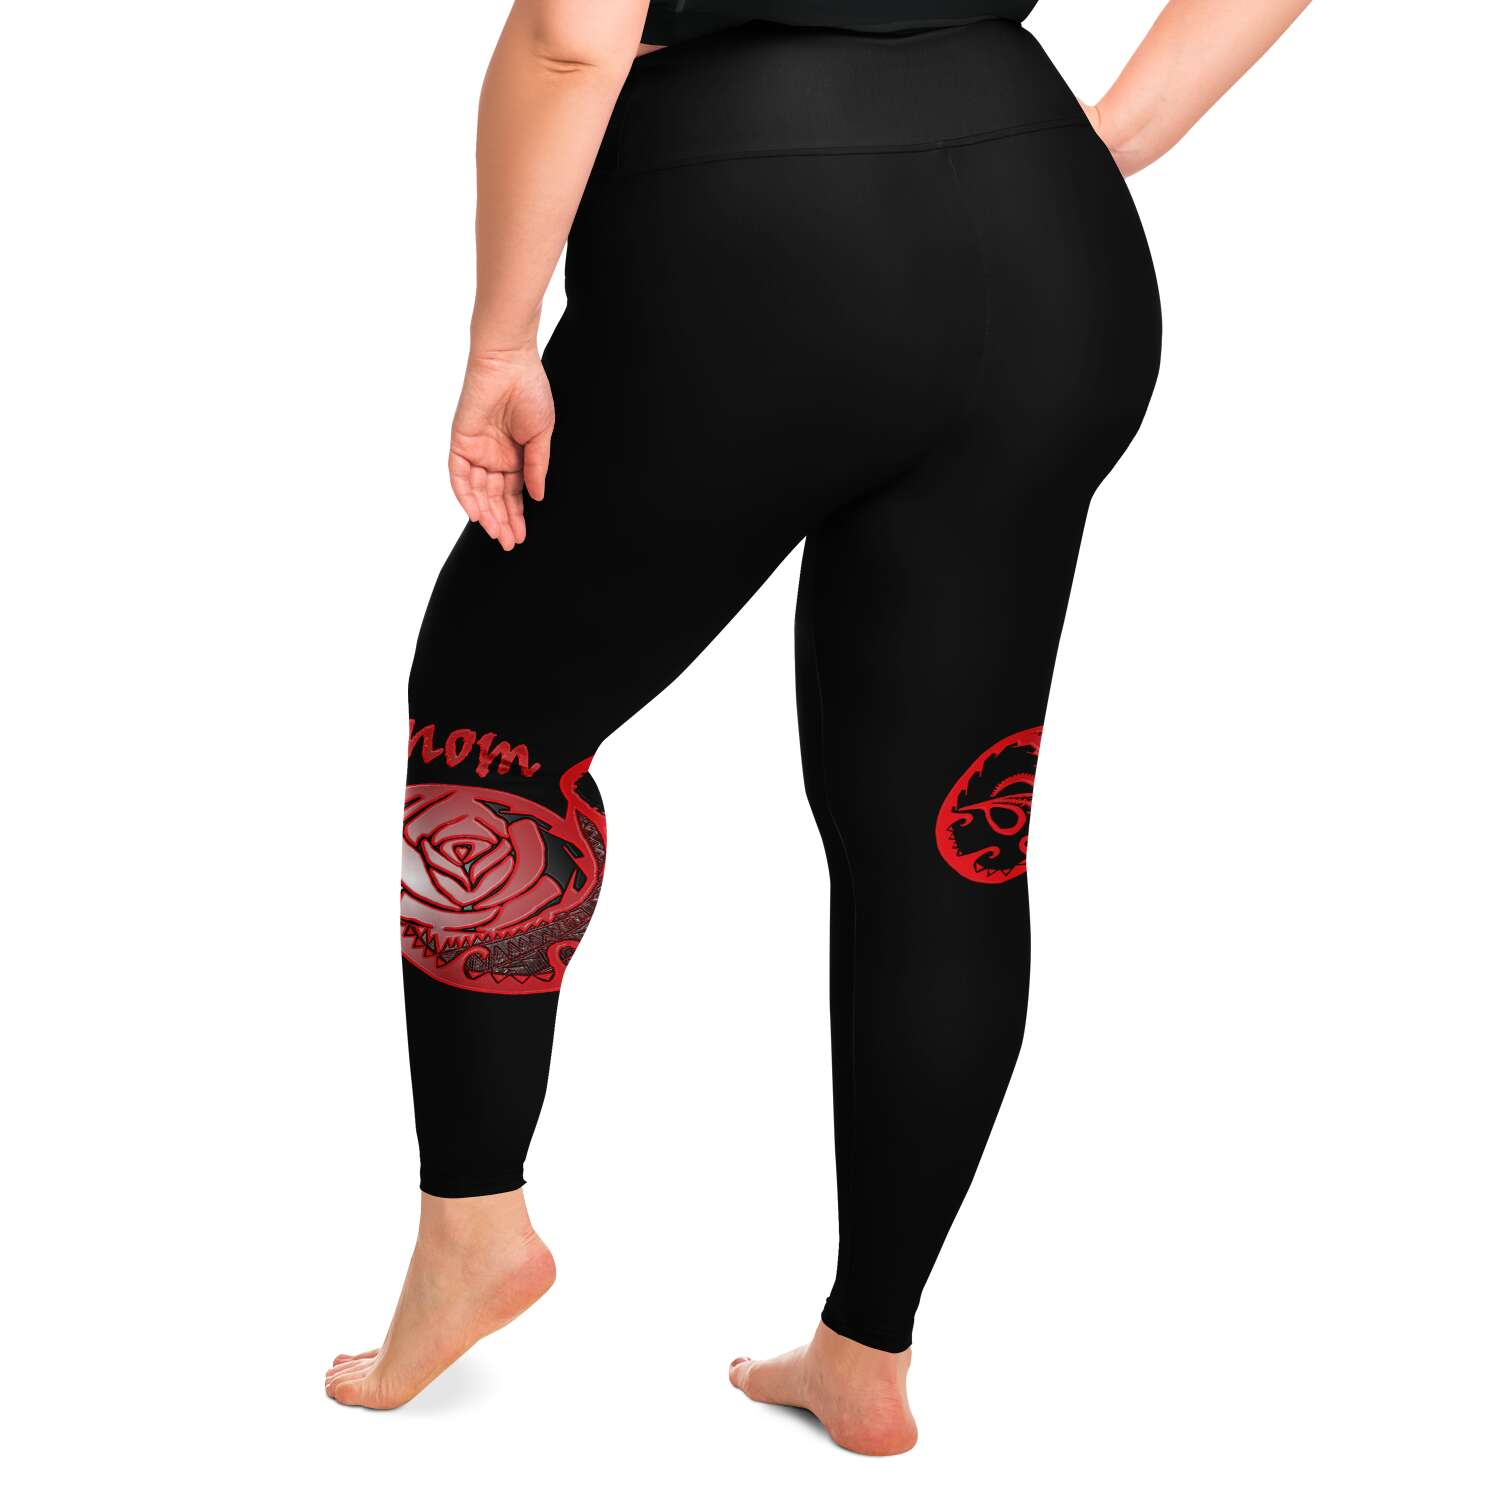 Team Venom Plus Size Leggings XS-6XL